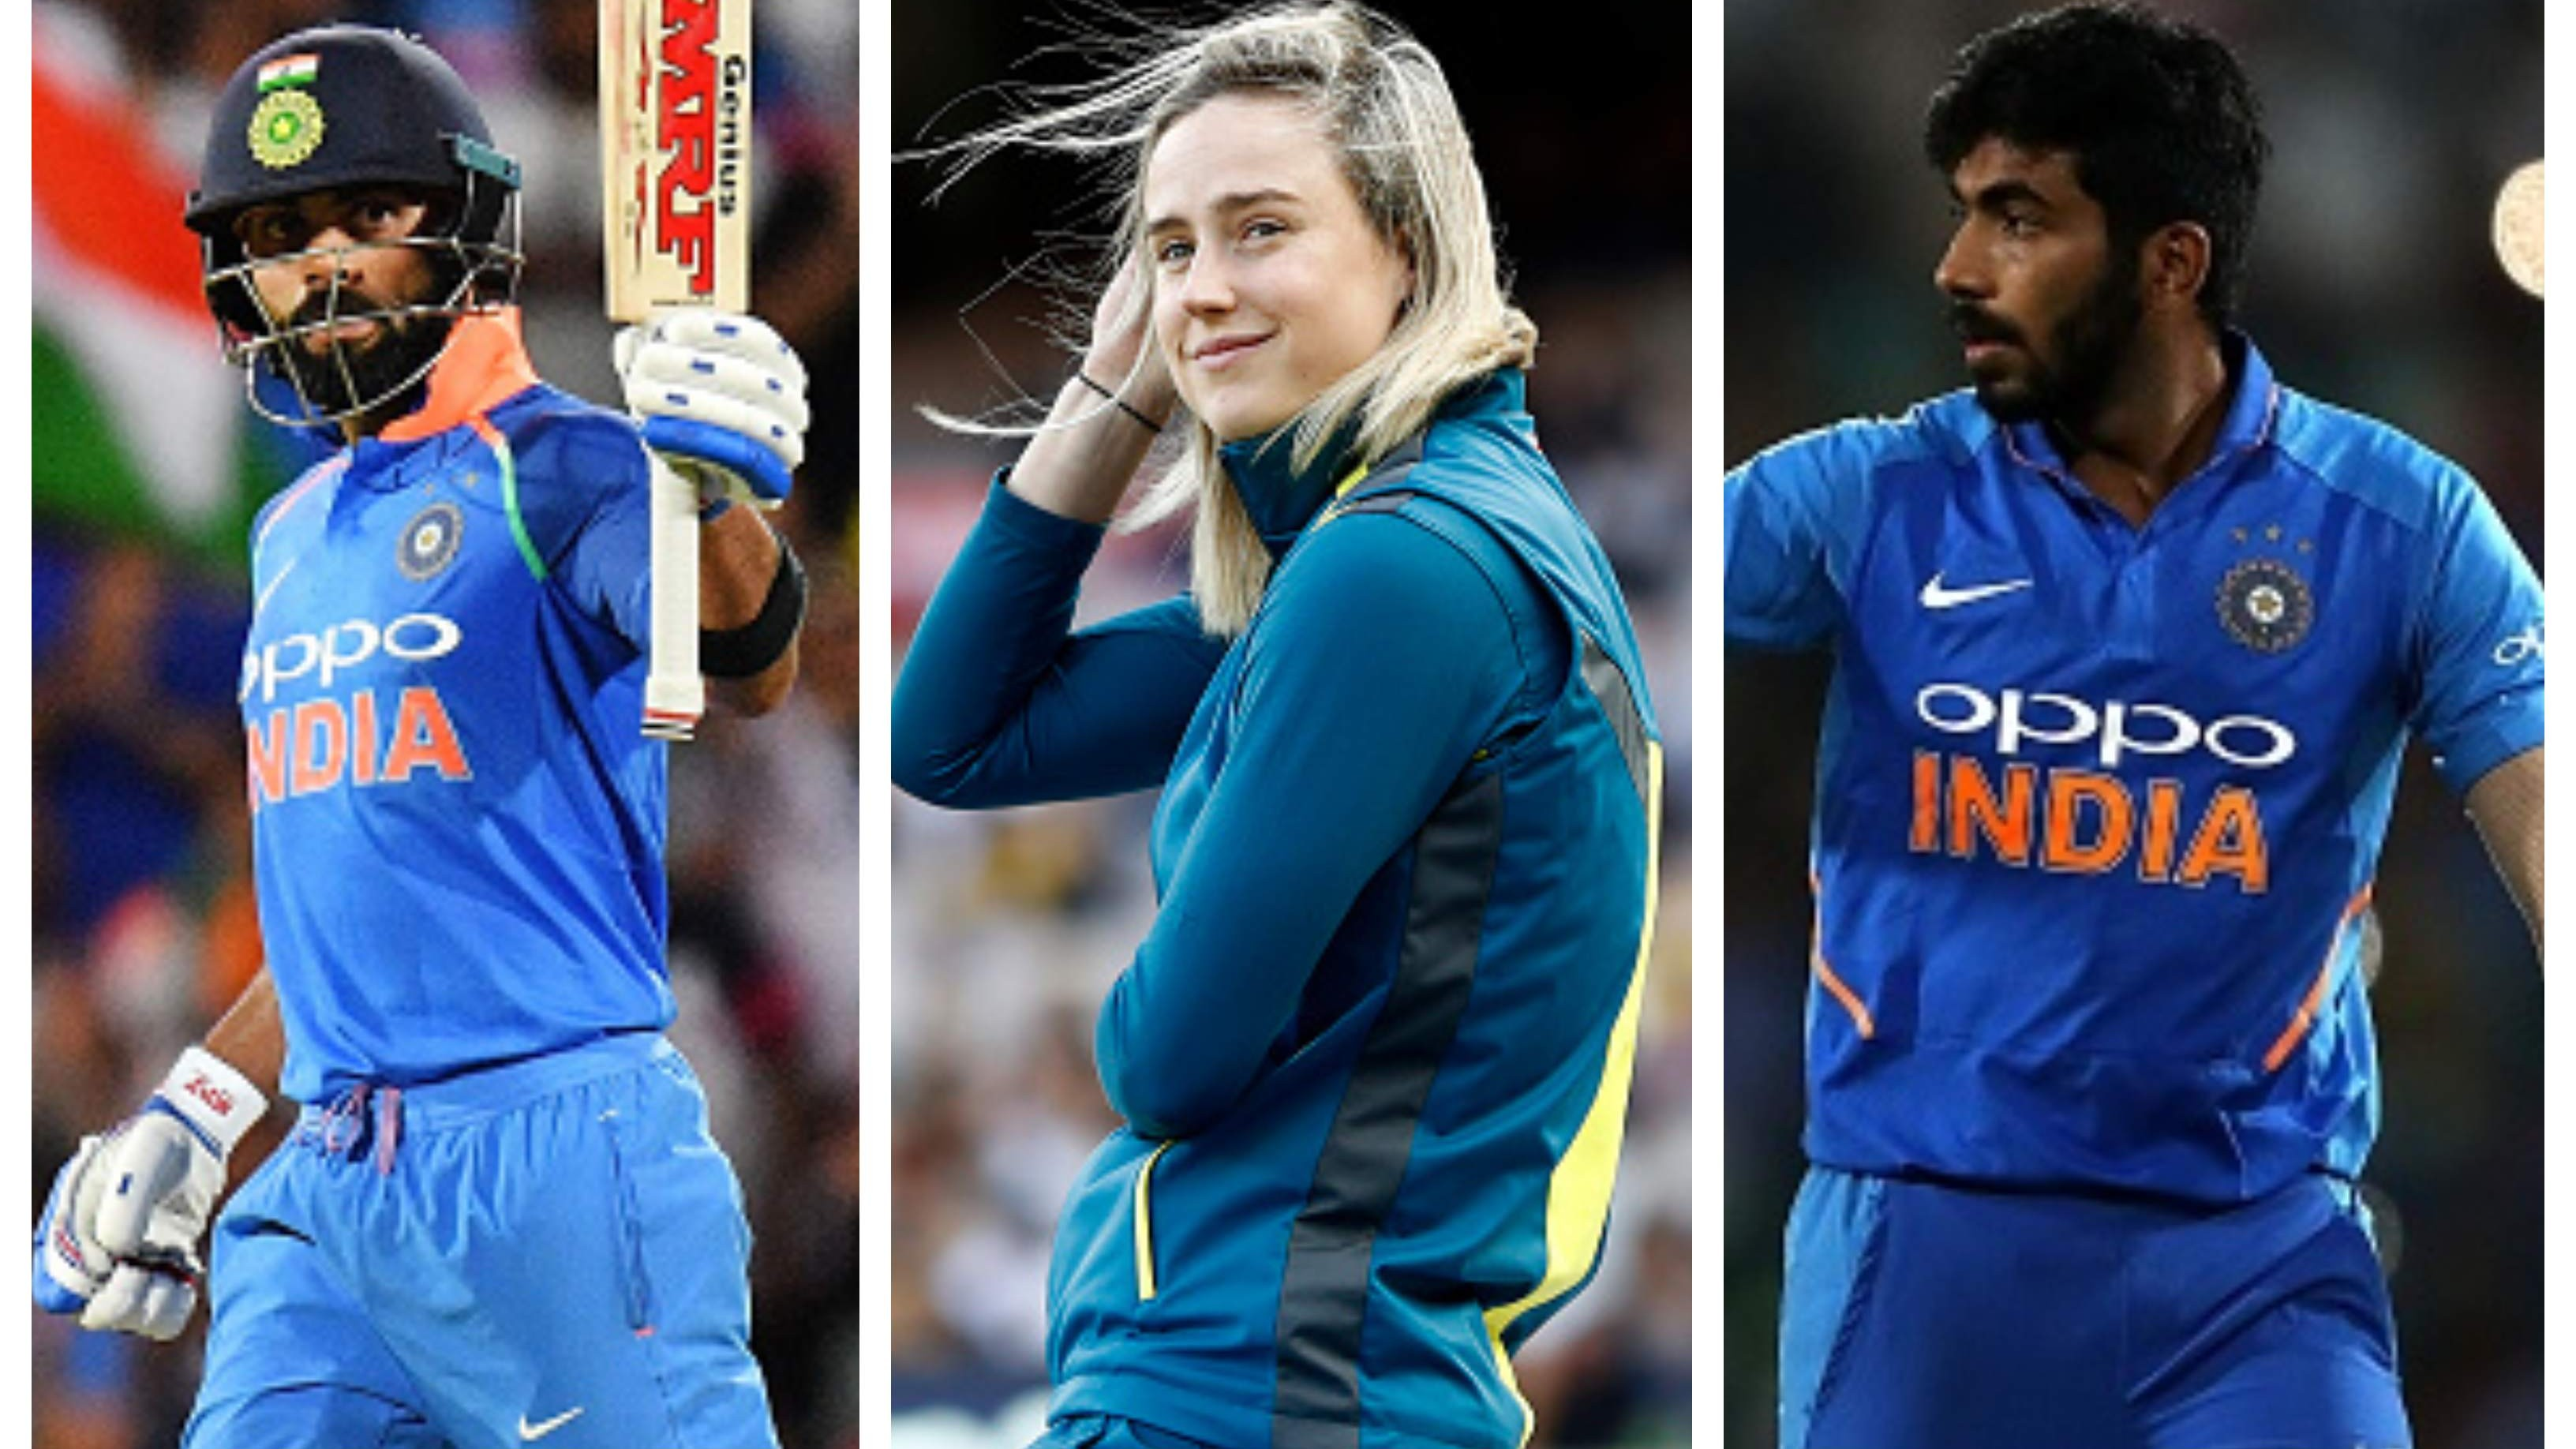 WATCH: Bowl to Virat Kohli or face Jasprit Bumrah? Ellyse Perry reveals her choice